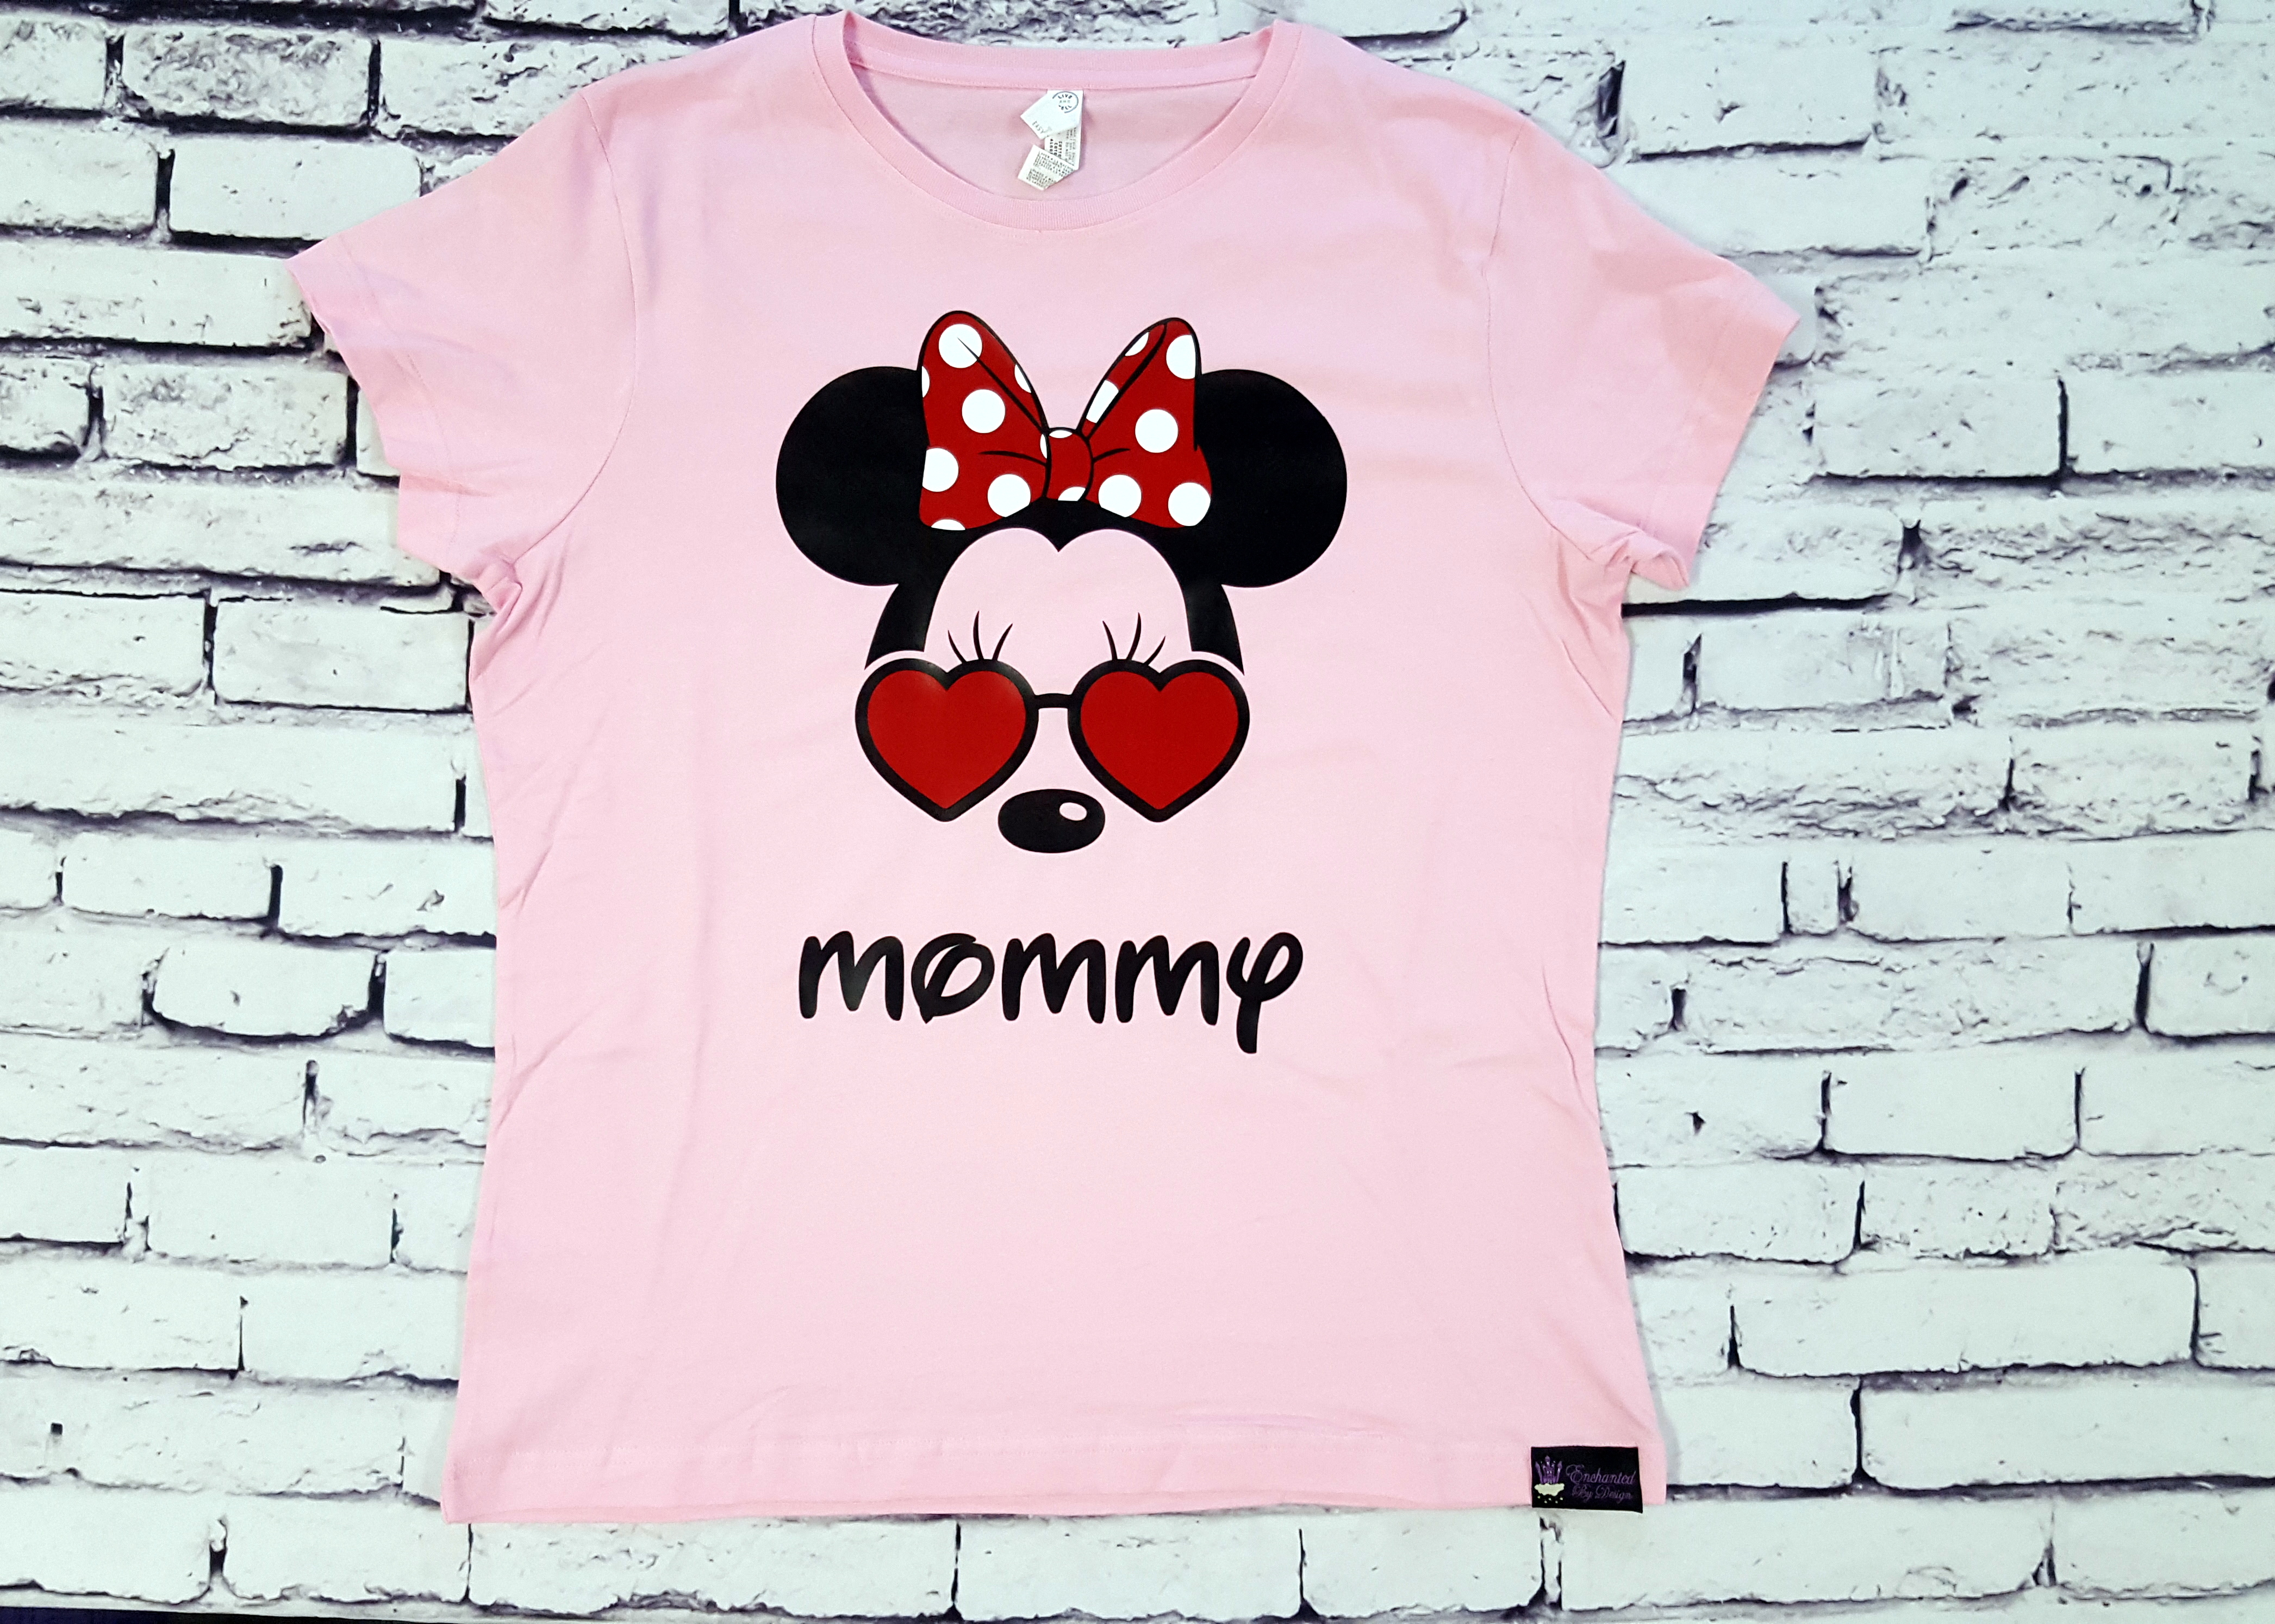 Minnie Mouse T Shirt Design | Sunglass Mickey And Minnie Mouse Disney Family Trip Shirts